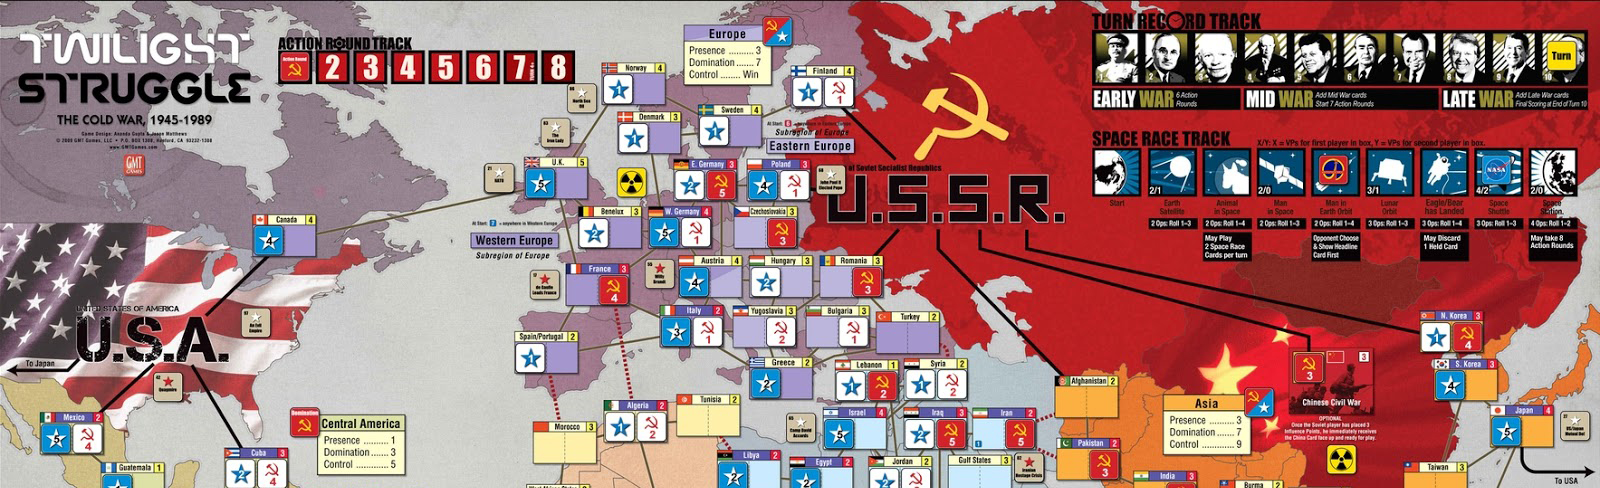 twilight_struggle_deluxe_3